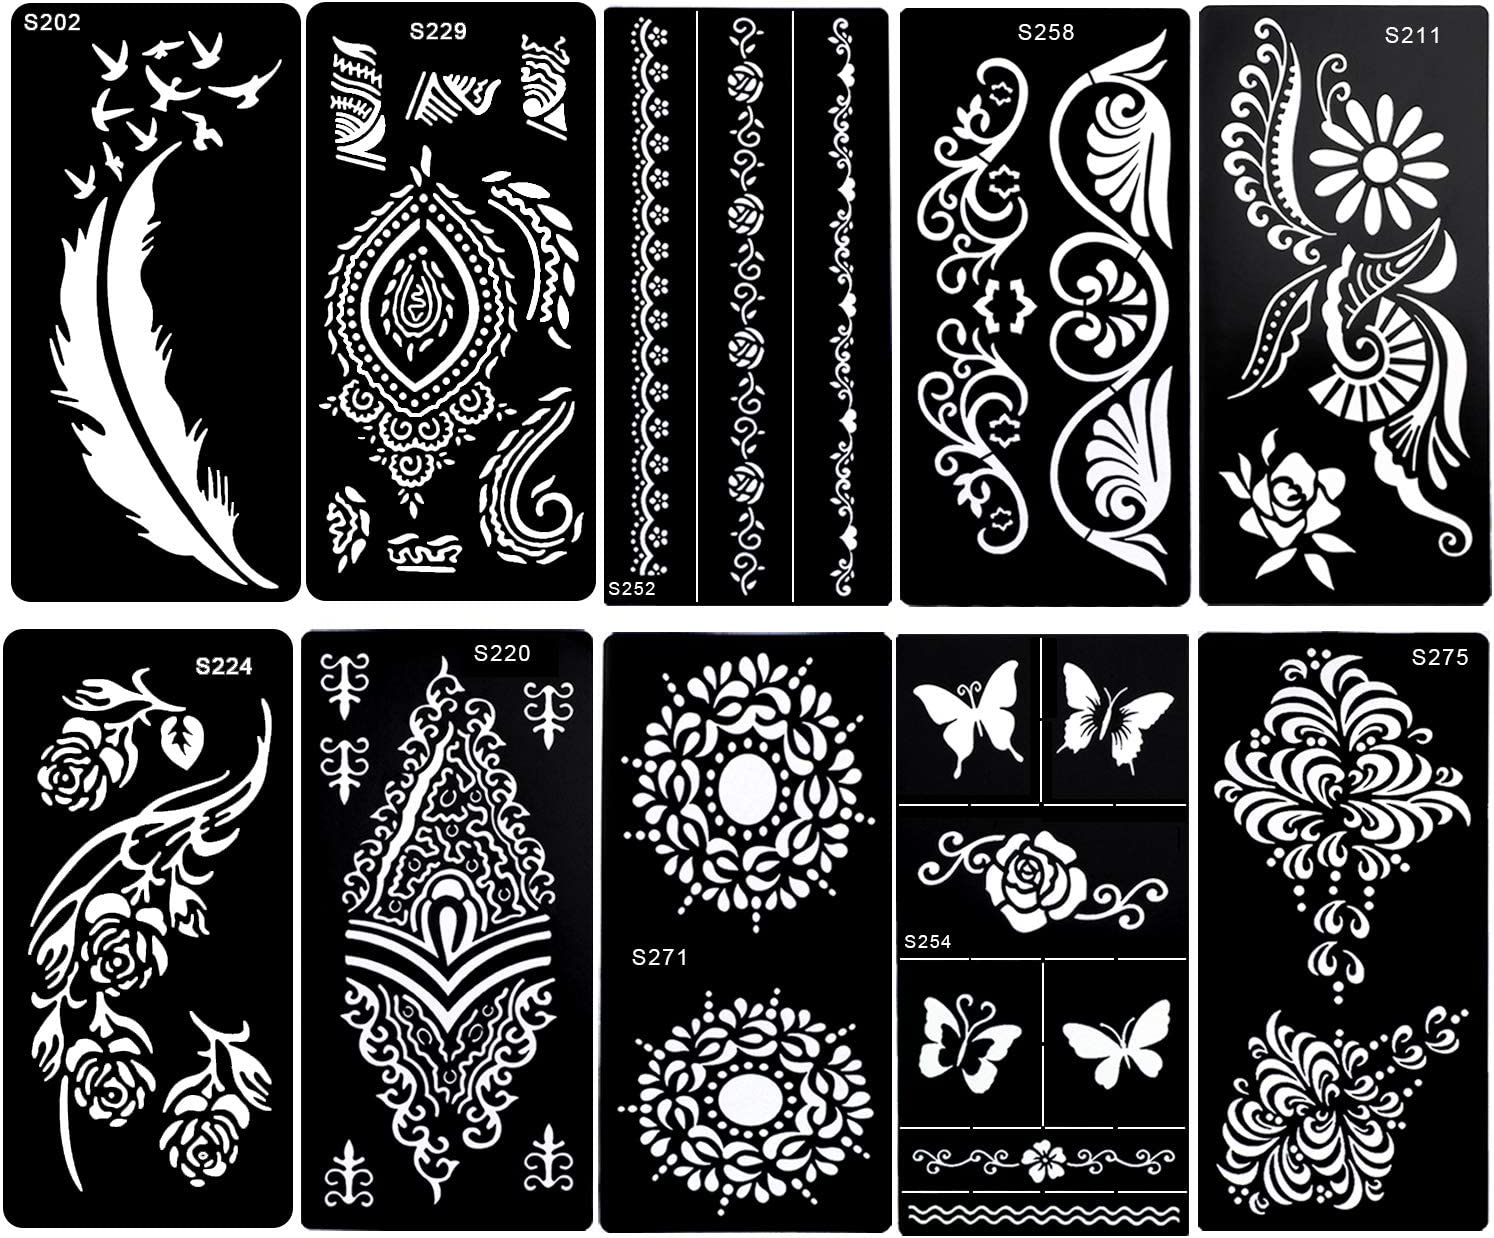 Konsait 10 Sheets Henna Temporary Tattoo Stencils Reusable Henna Tattoo Sticker Template Feather Butterfly Mandala Flower Jewelry Face Body Art Glitter Tattoo Stencil Kit For Adults Women Girls Amazon Co Uk Beauty Free delivery and returns on ebay plus items for plus members. konsait 10 sheets henna temporary tattoo stencils reusable henna tattoo sticker template feather butterfly mandala flower jewelry face body art